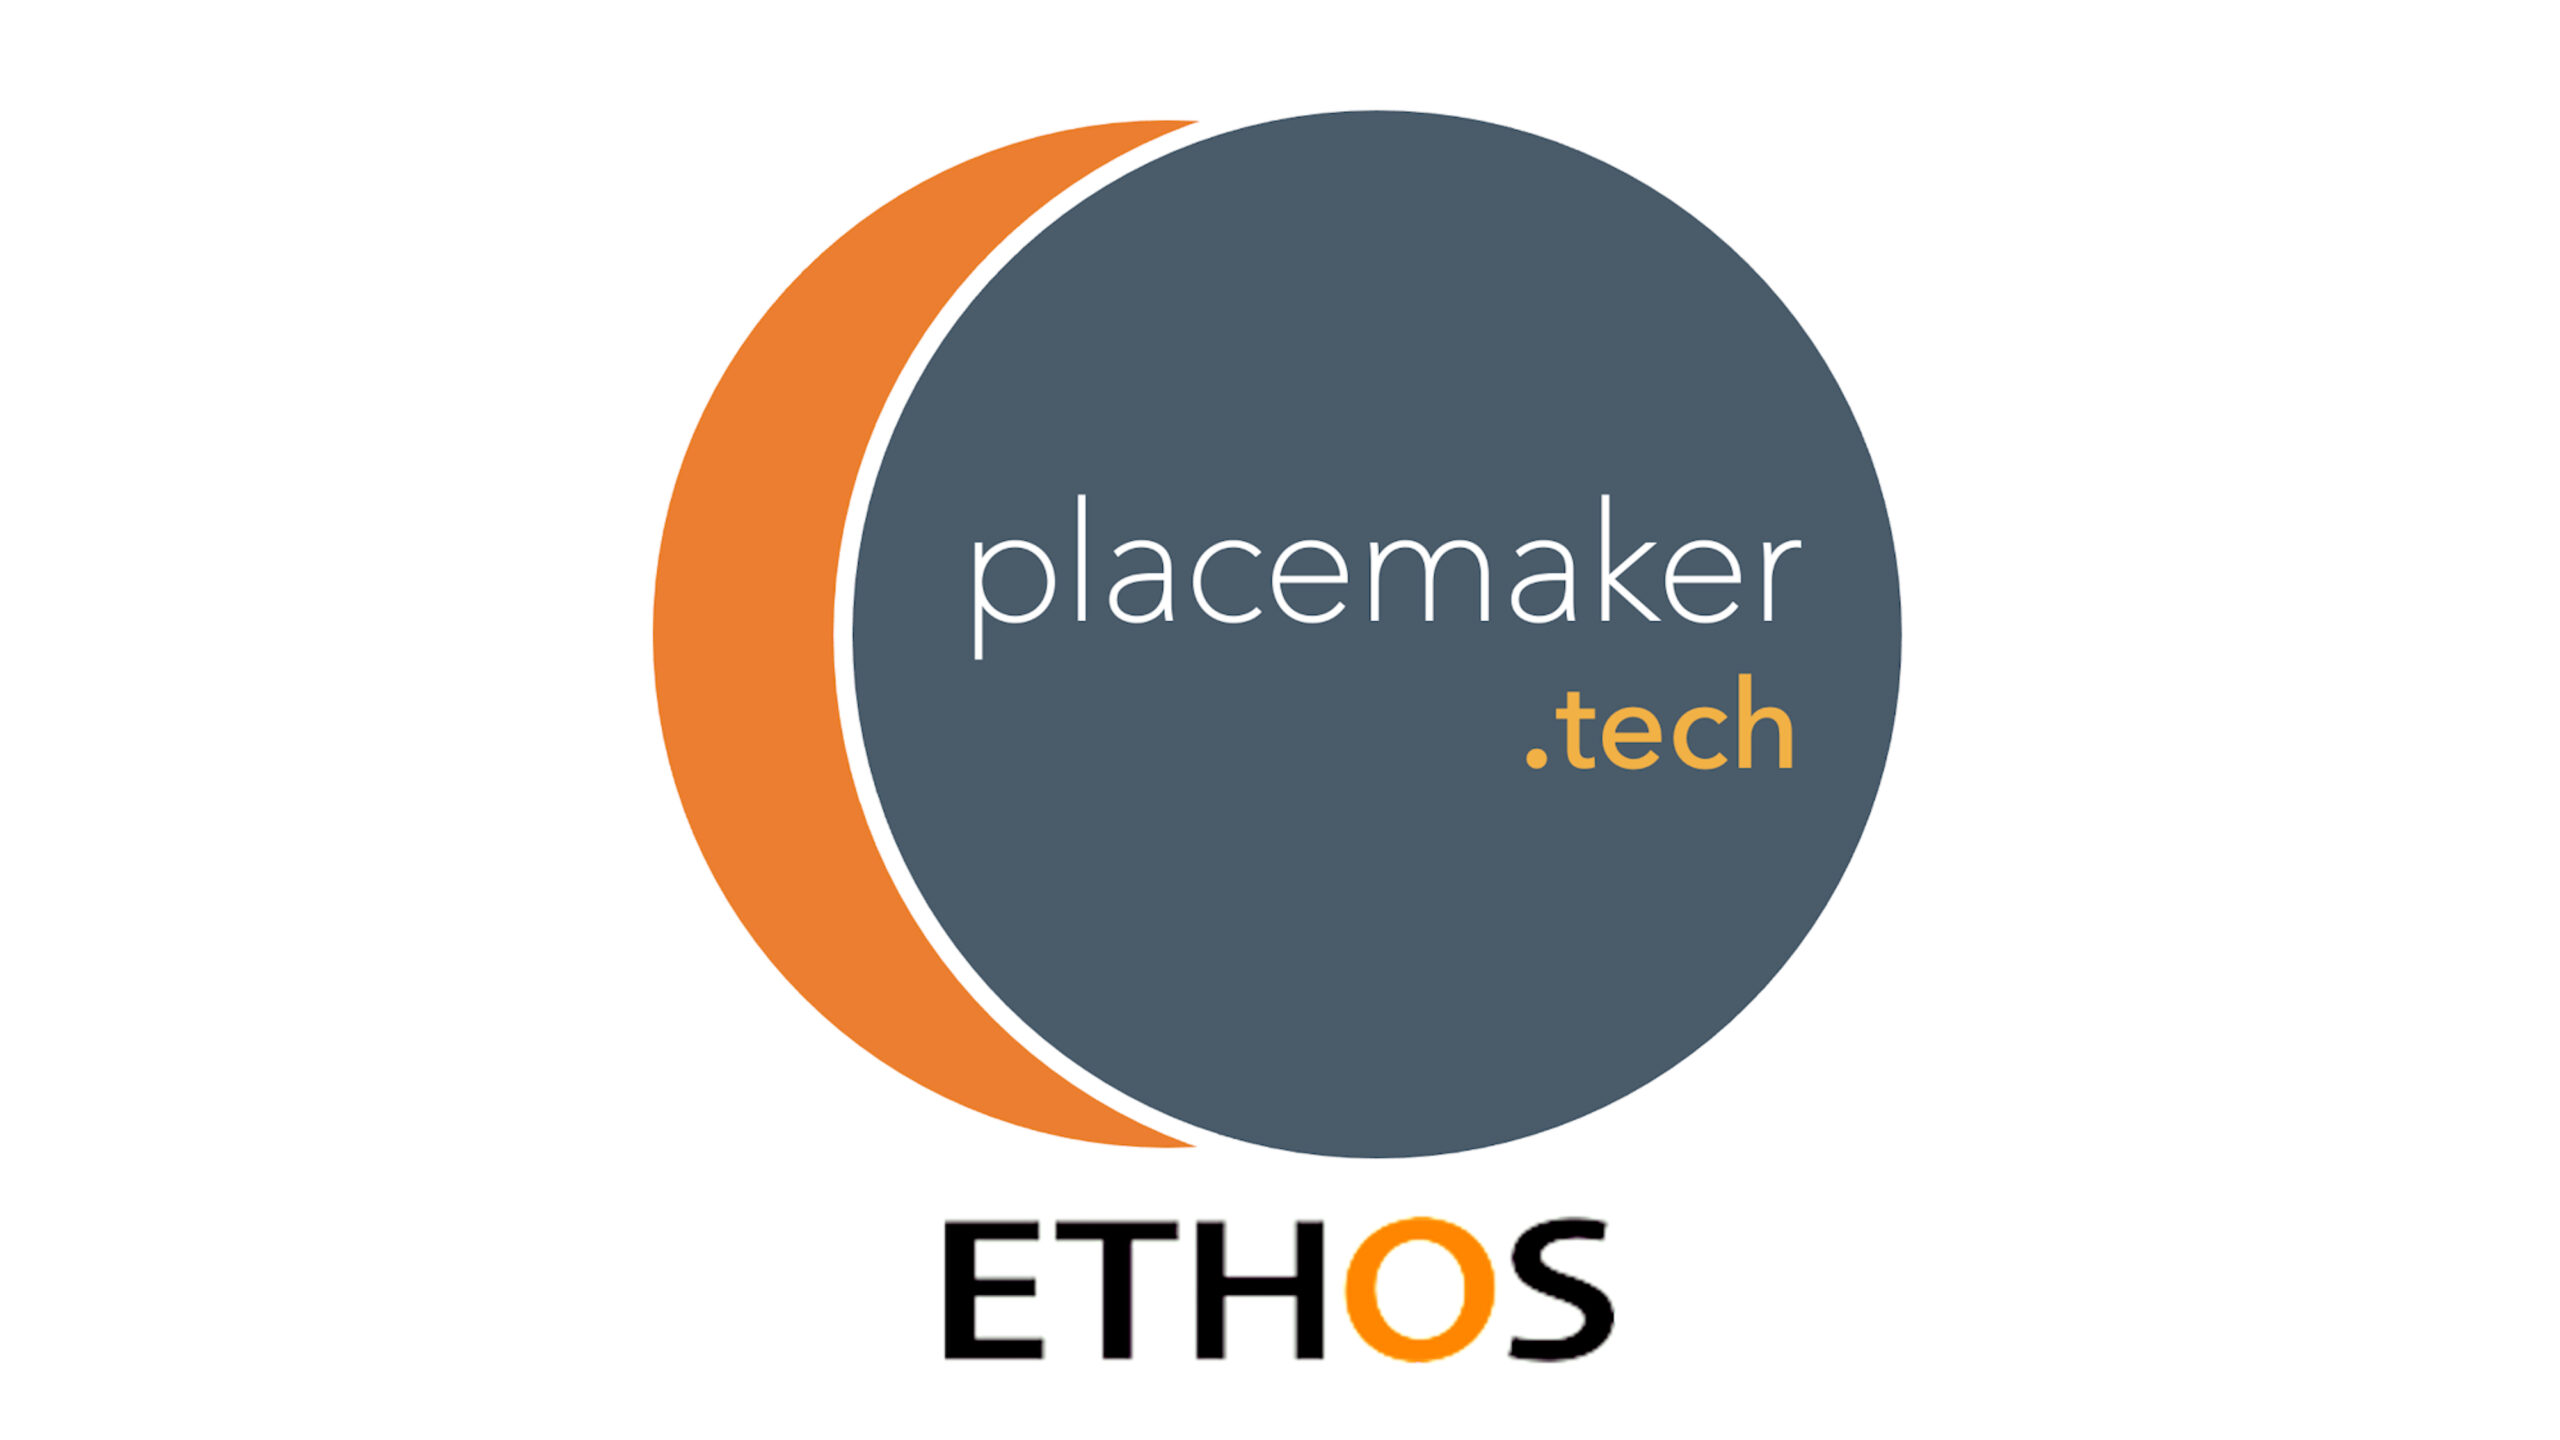 placemaker logo with ethos logo